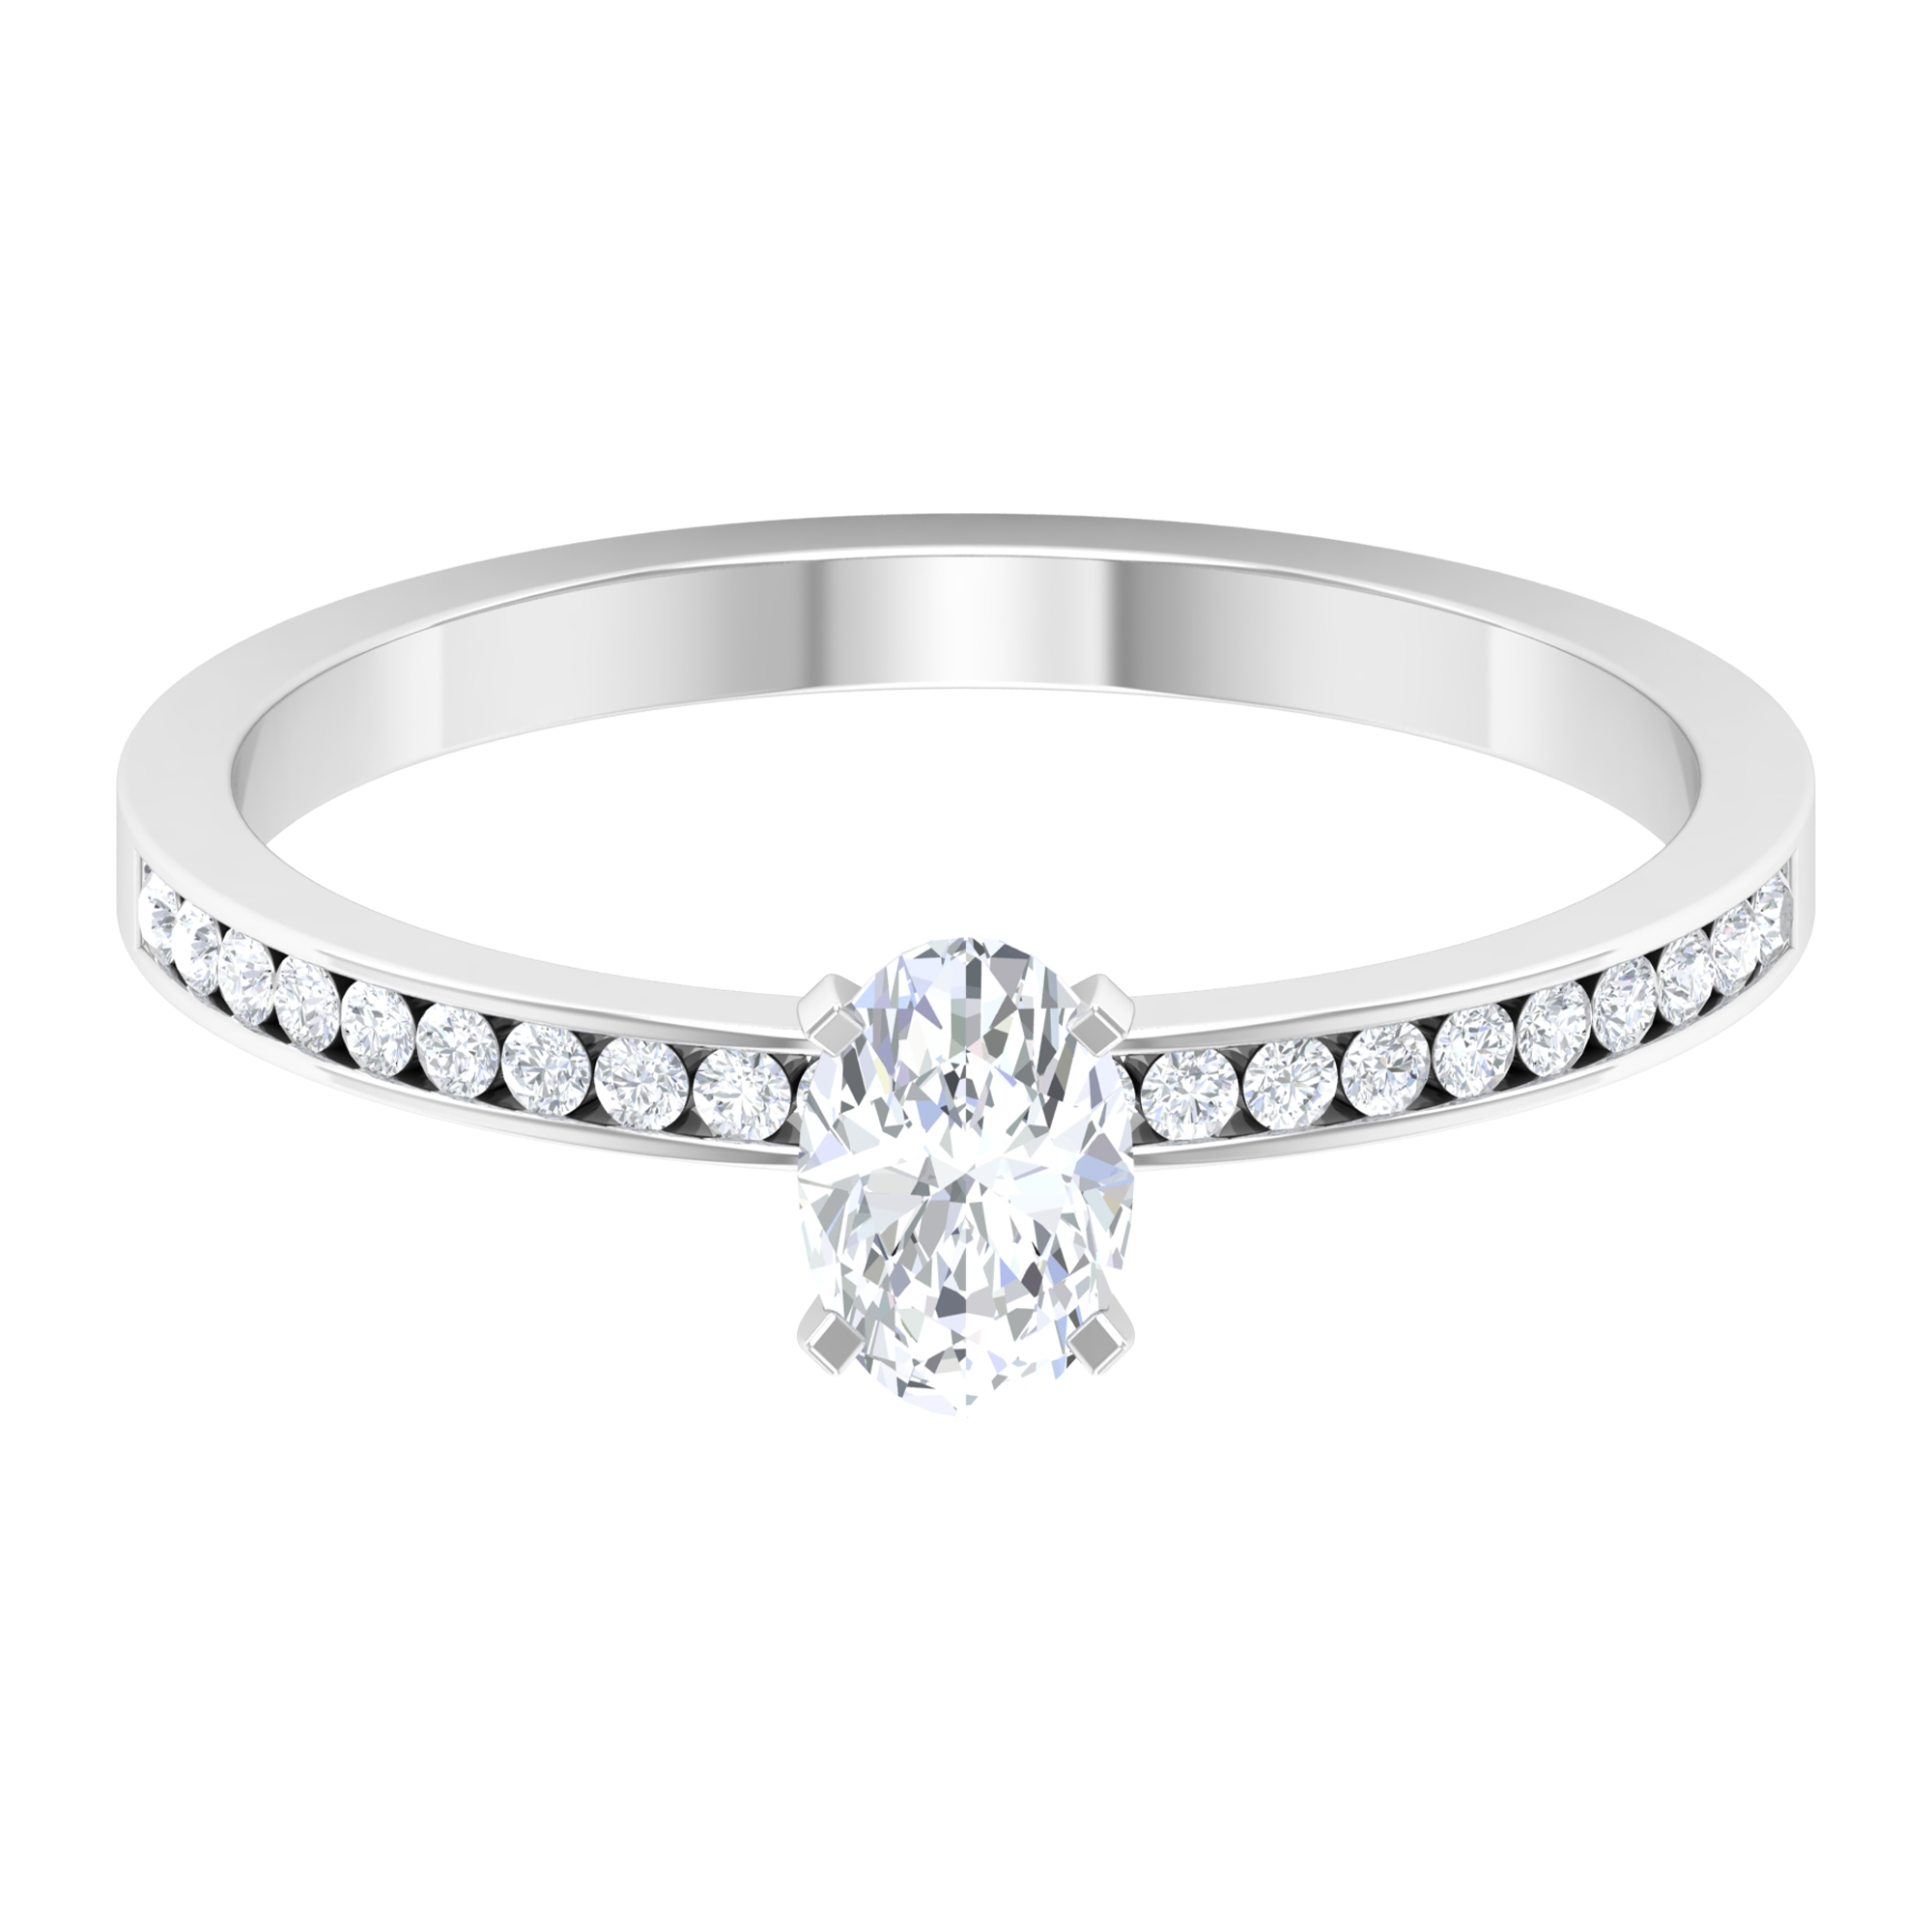 Square Prong Set 4X6 MM Oval Cut Solitaire Diamond Ring with Channel Set Side Stones